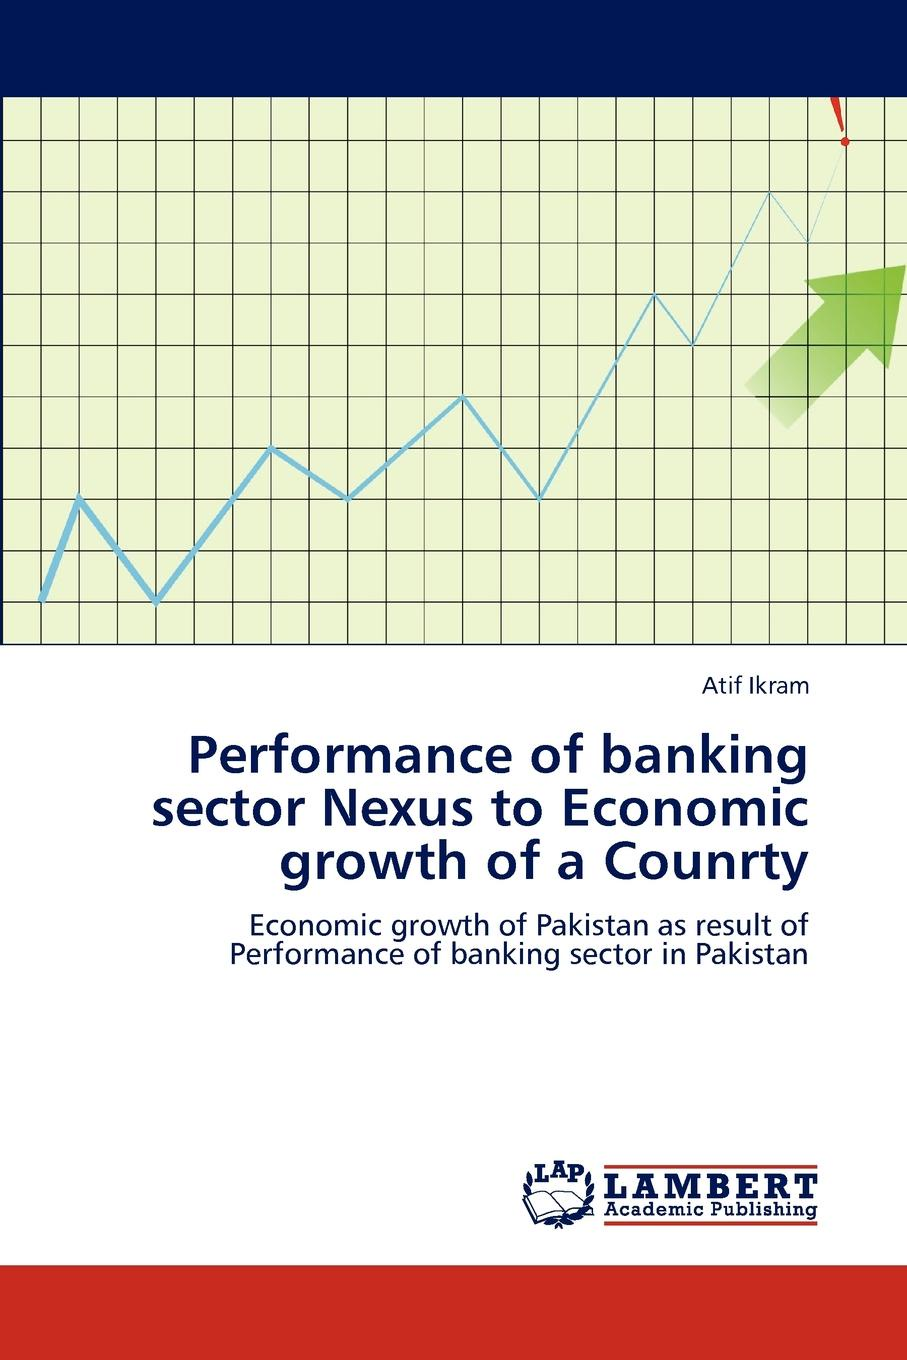 Atif Ikram Performance of Banking Sector Nexus to Economic Growth of a Counrty political violence and fdi a case study of pakistan telecom sector